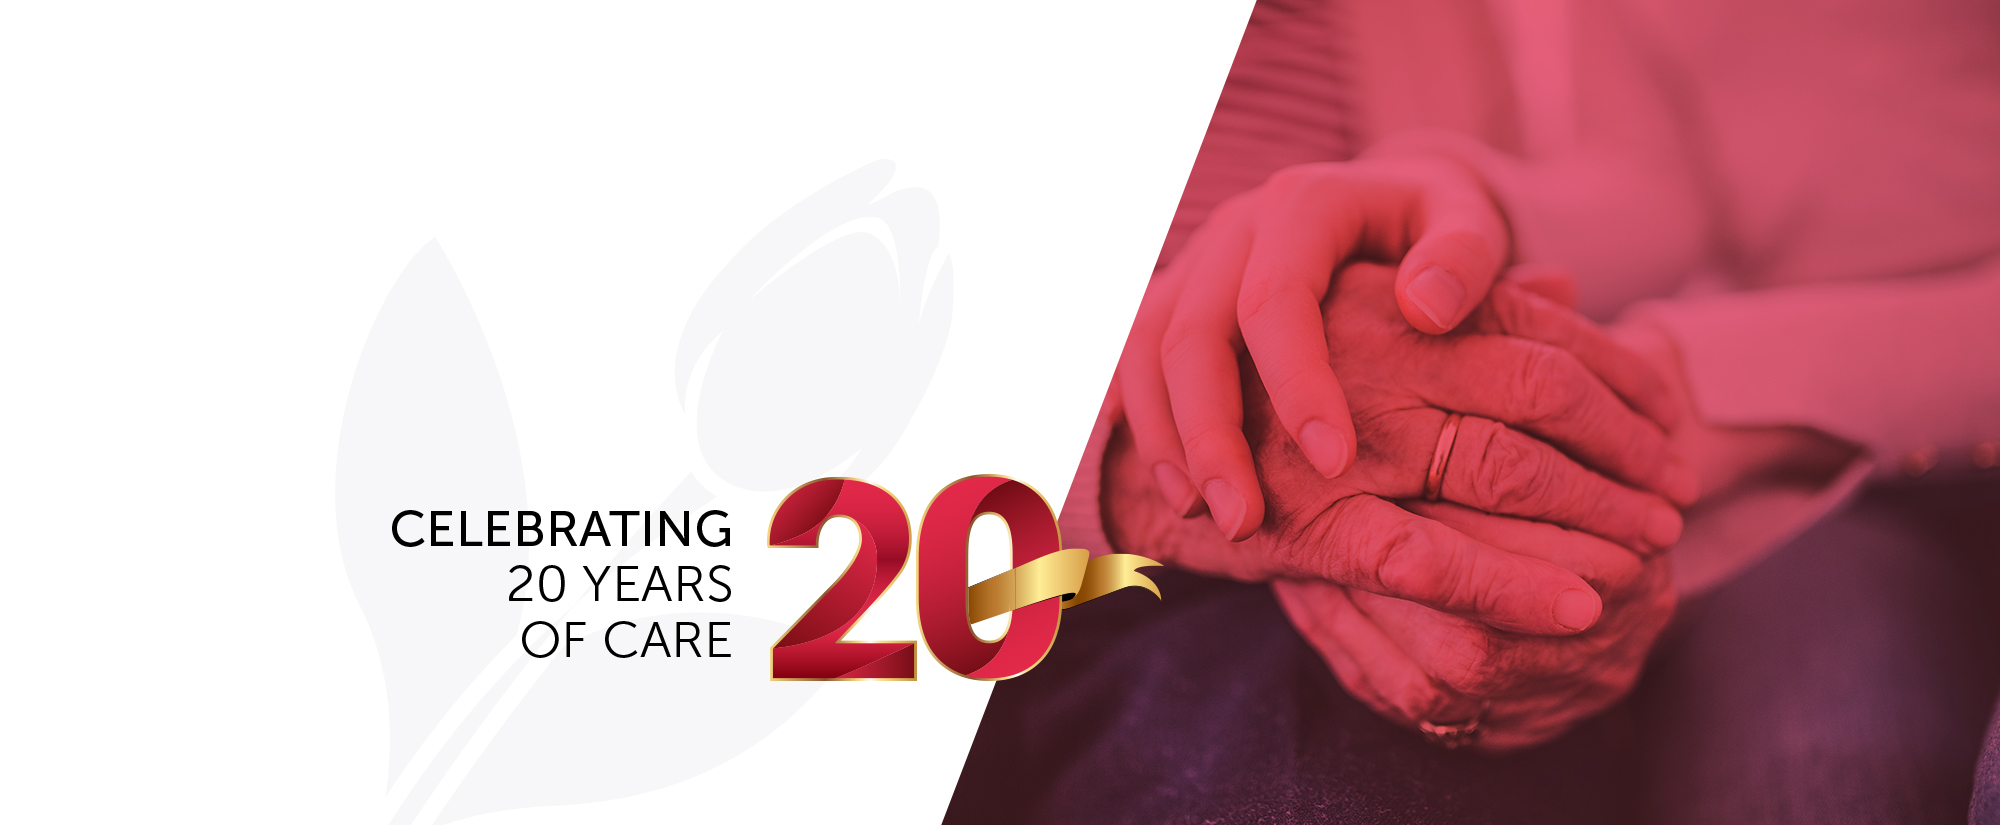 20 years, anniversary, Mowlam, Healthcare, nursing home, nursing homes, ireland